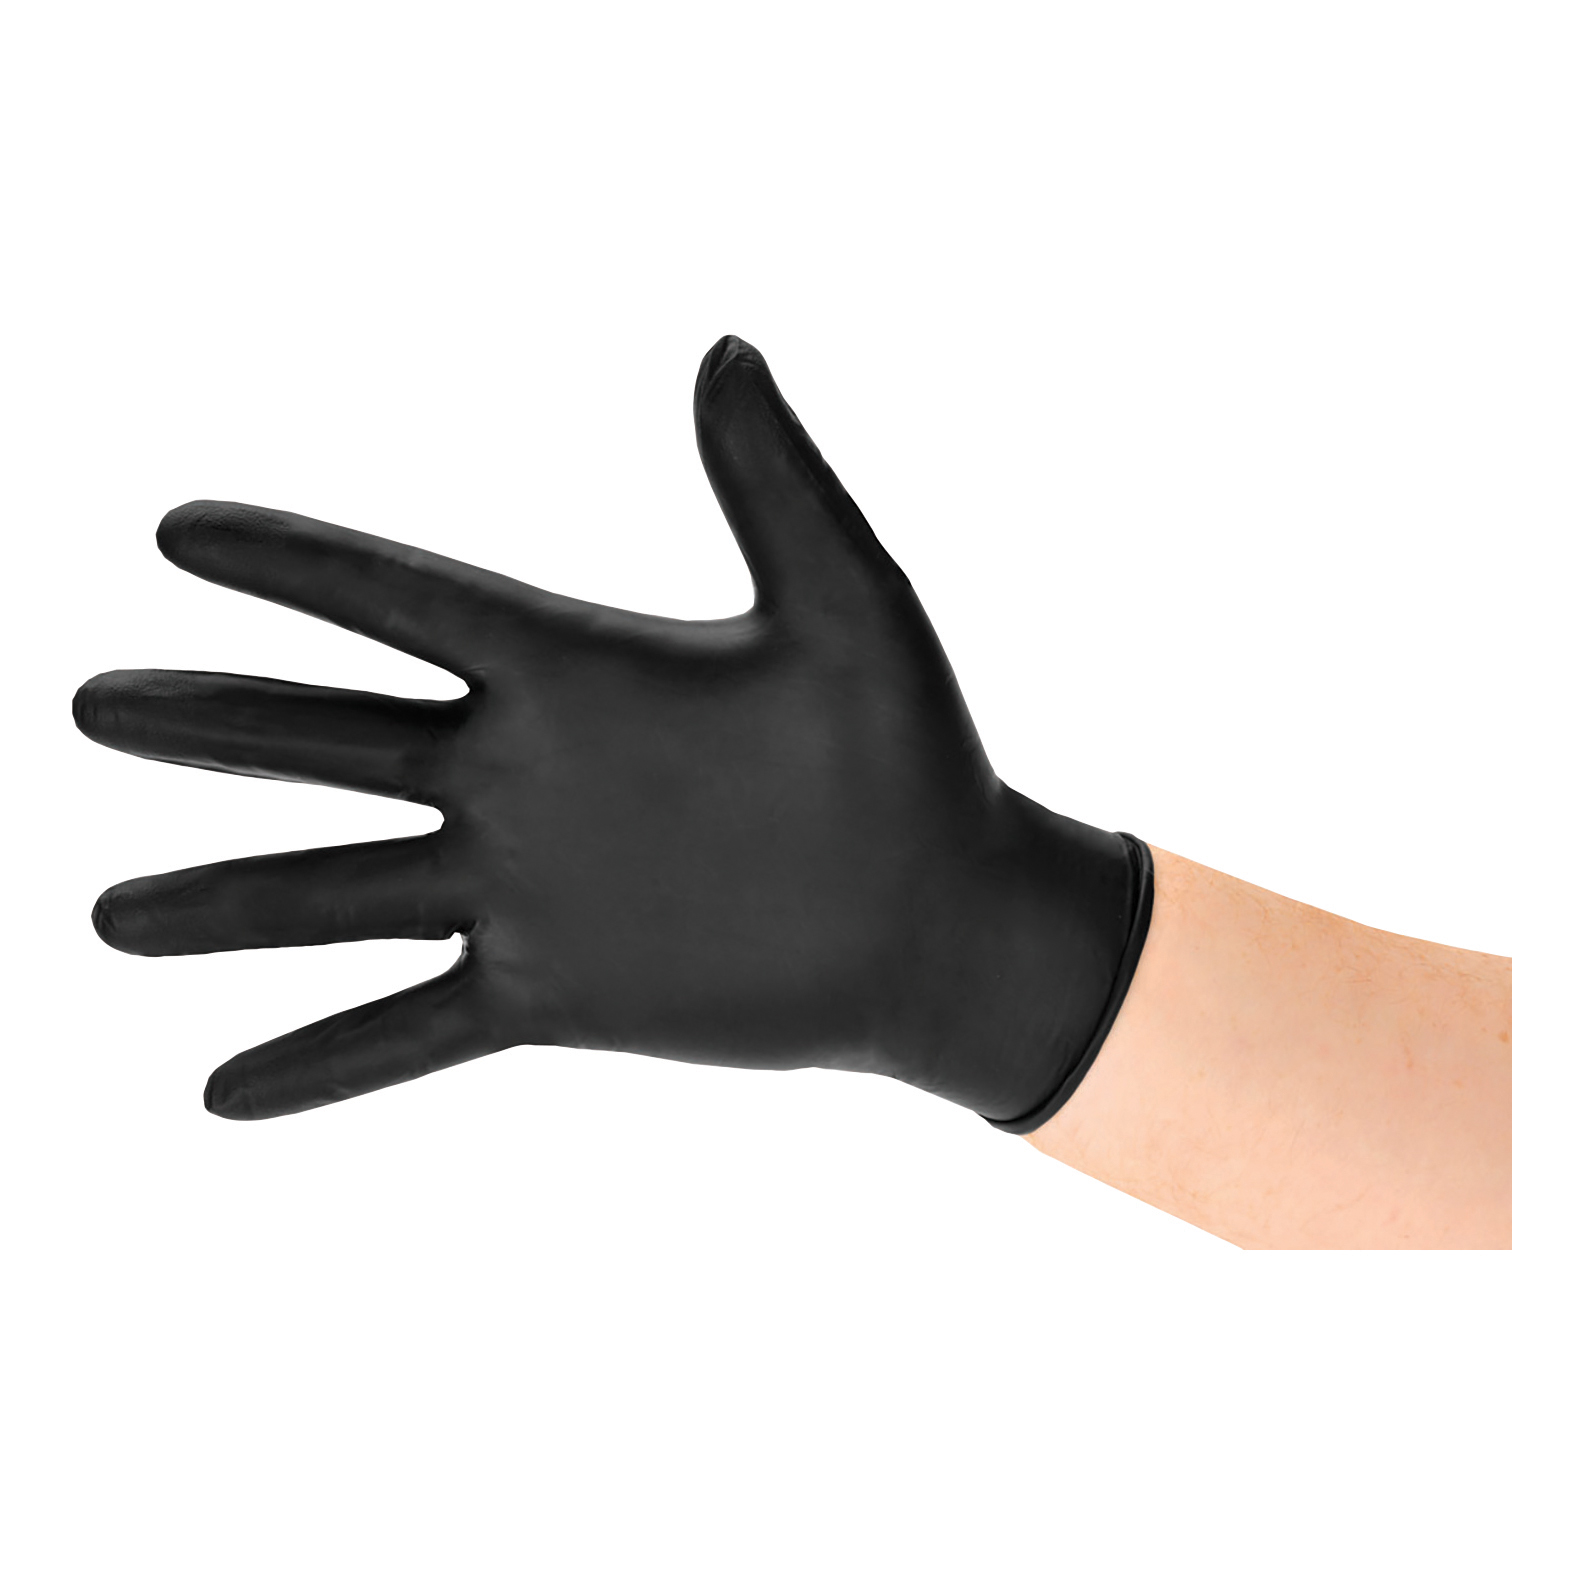 Hand Protection Nitrile Gloves Abrasion-resistance Rolled-cuff Medium Black Pack 100